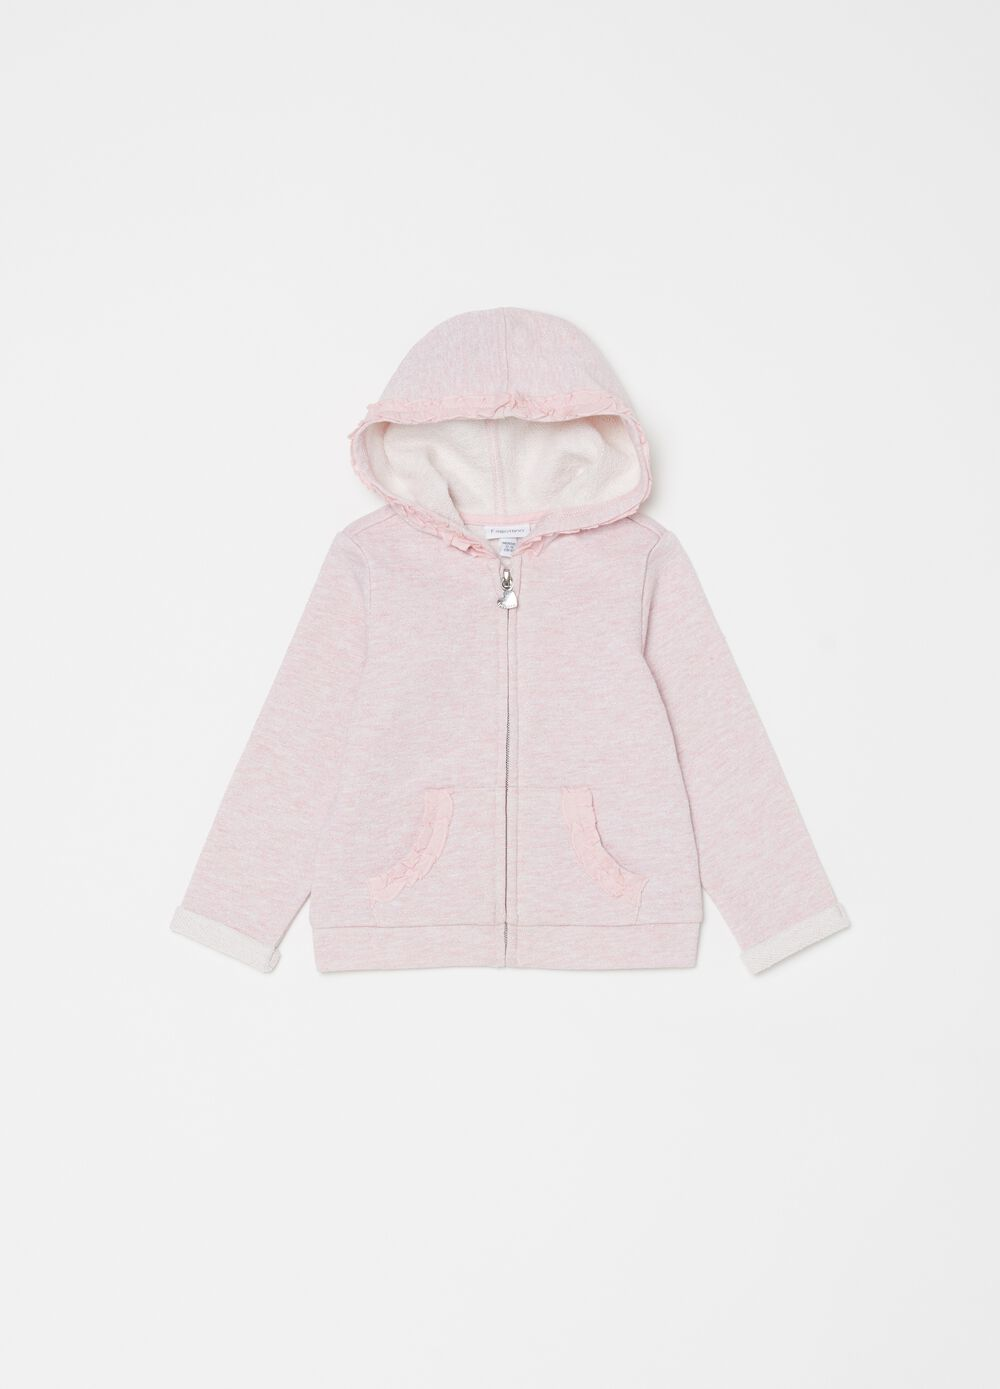 Sweatshirt with lurex, hood and zip